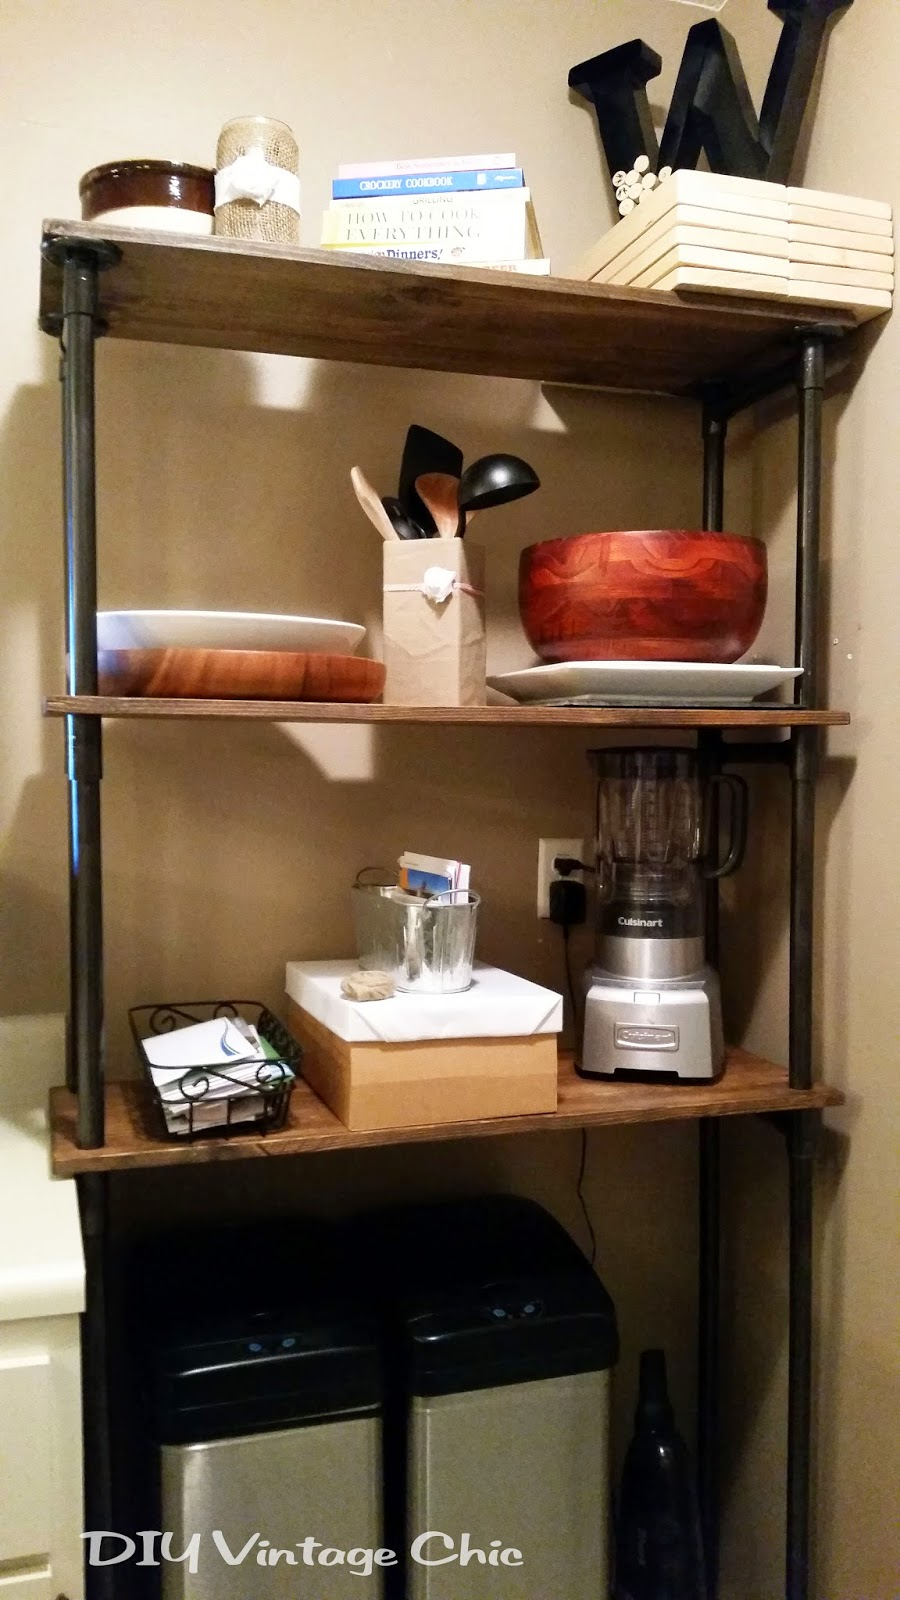 Excellent DIY Vintage Chic: DIY Affordable Pipe and Wood Bakers Rack SA56